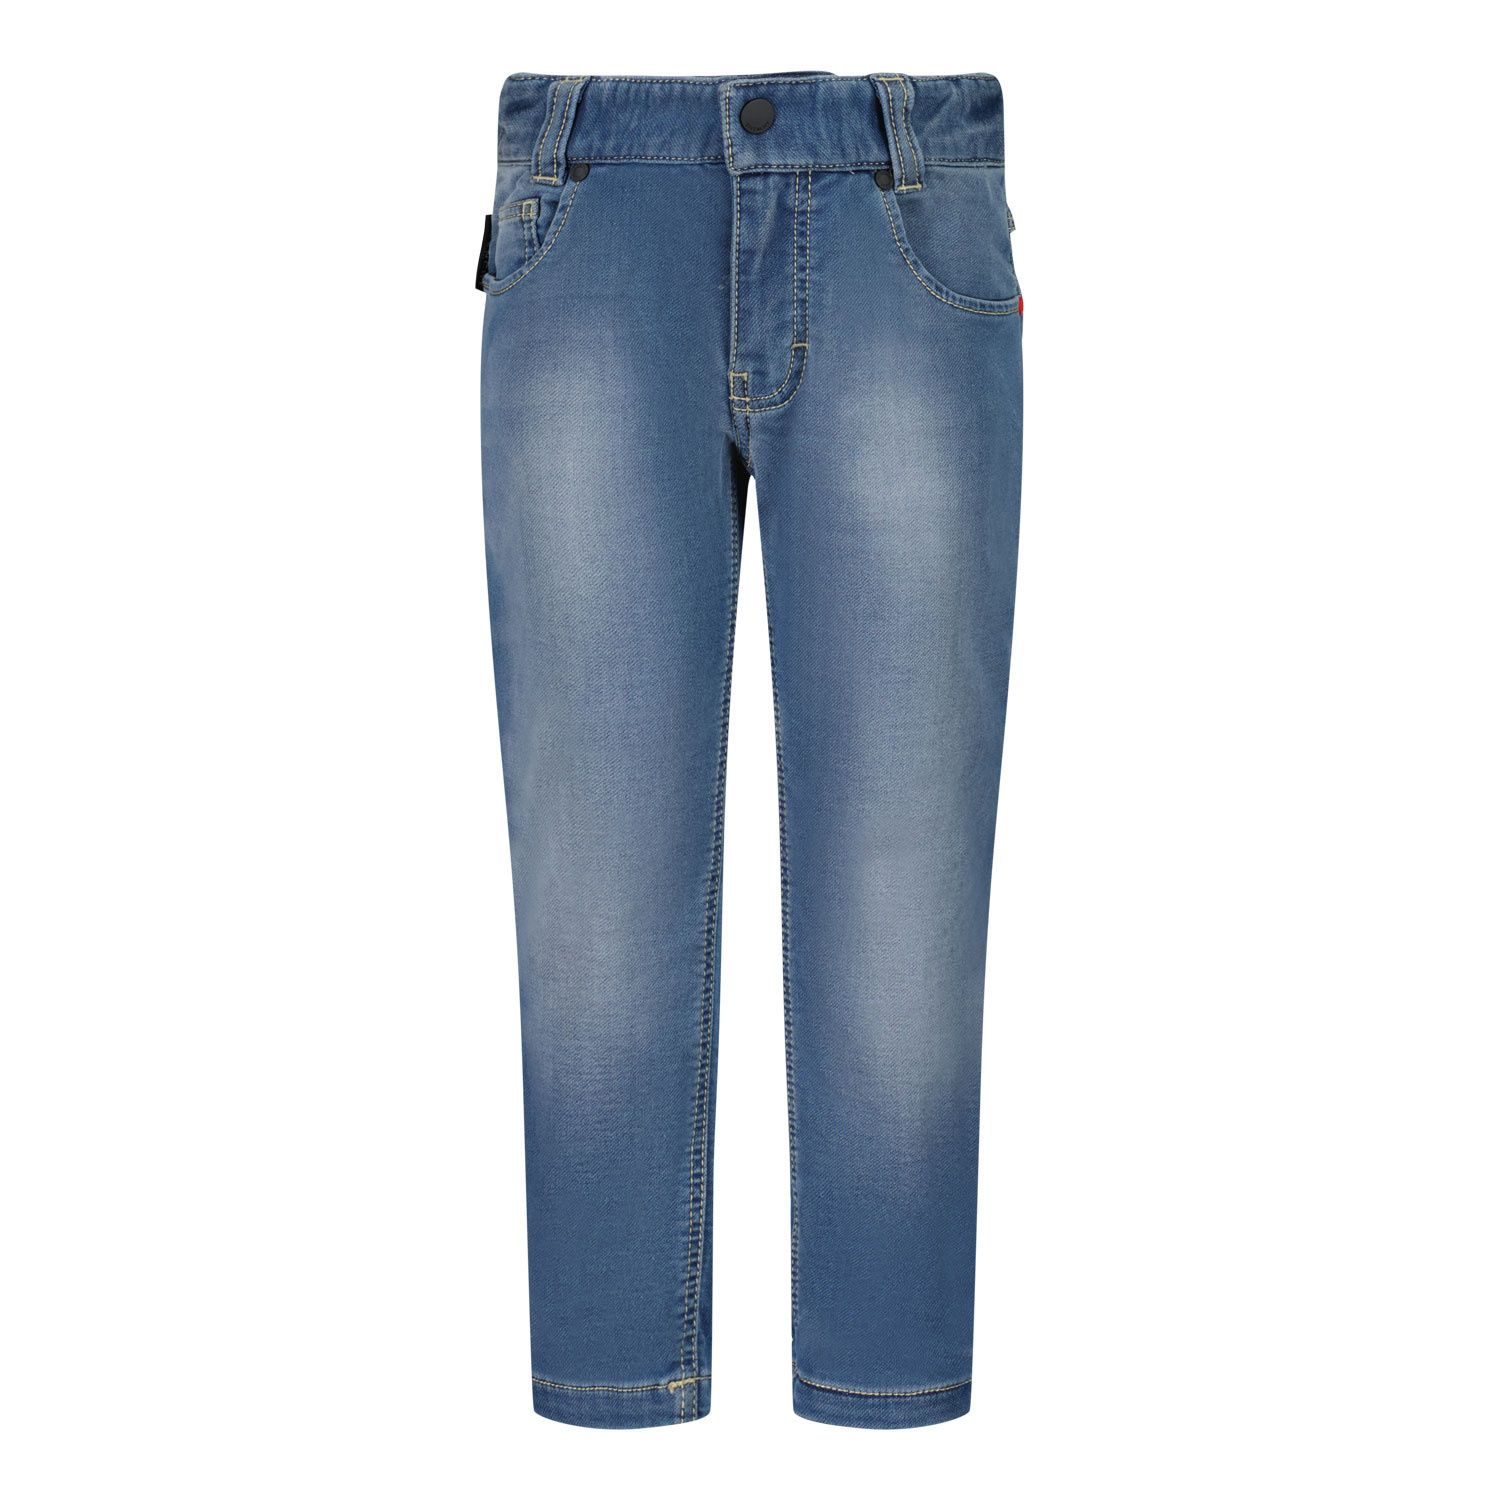 Picture of Givenchy H04116 baby pants jeans